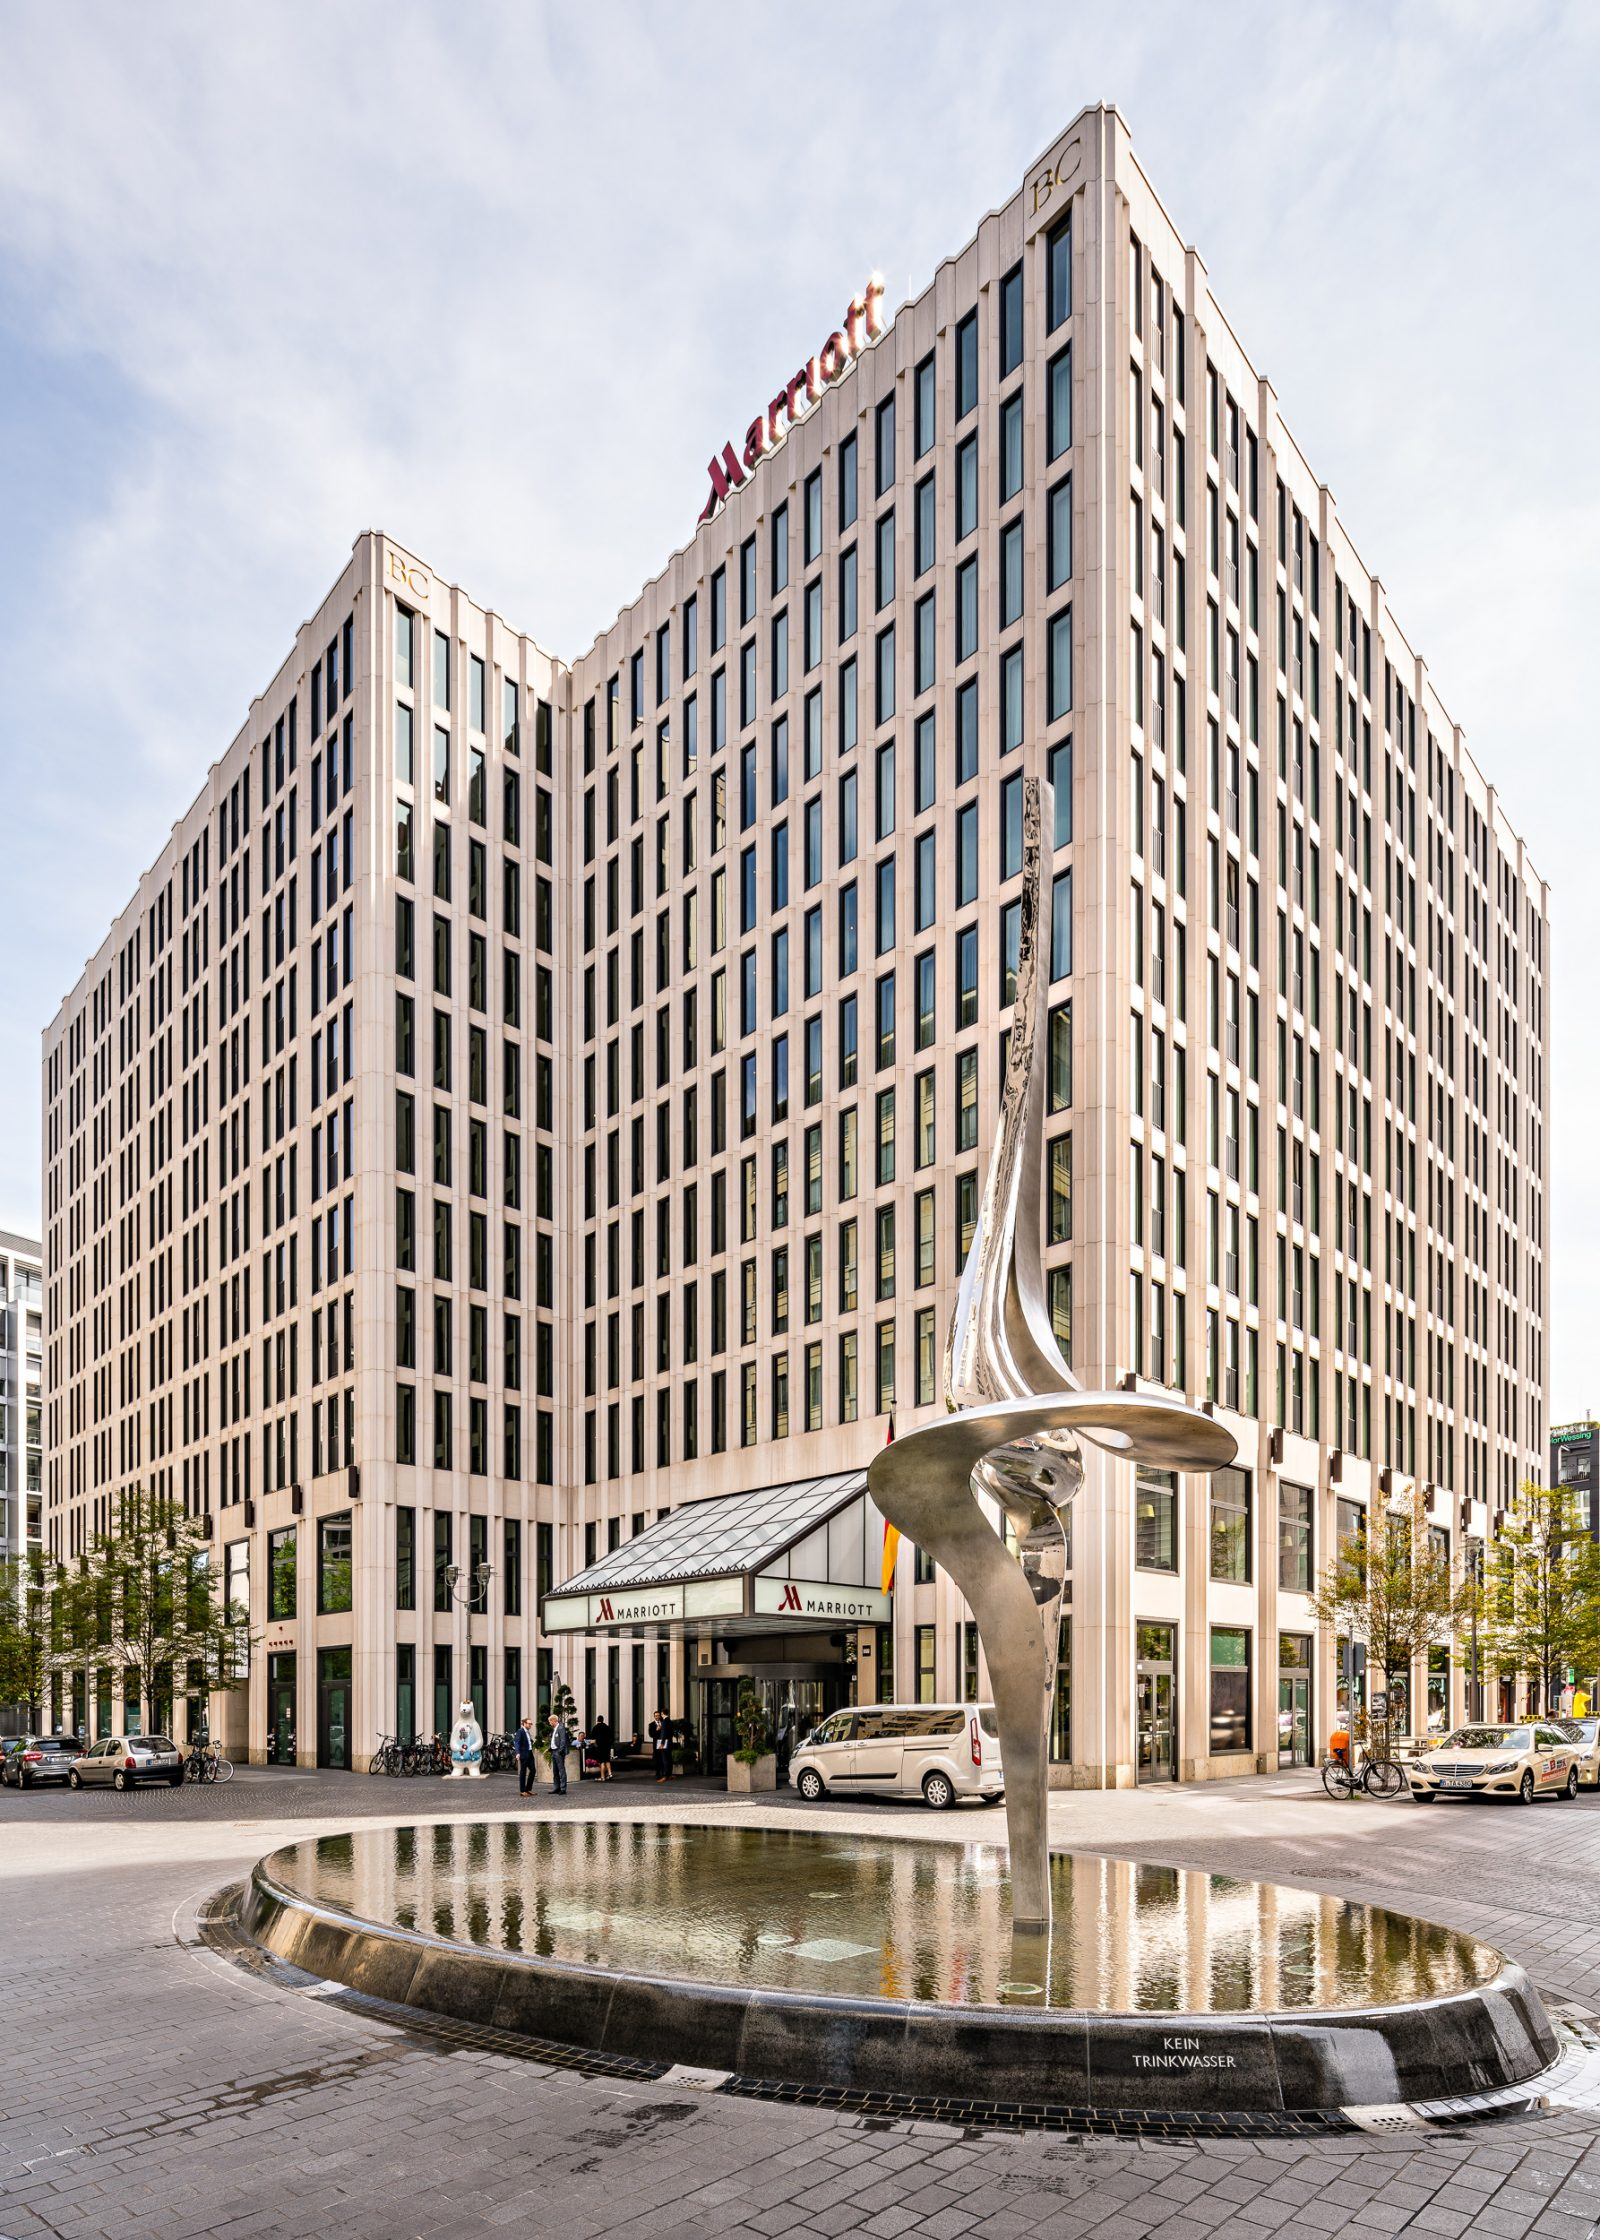 Hotel Marriott, Berlin